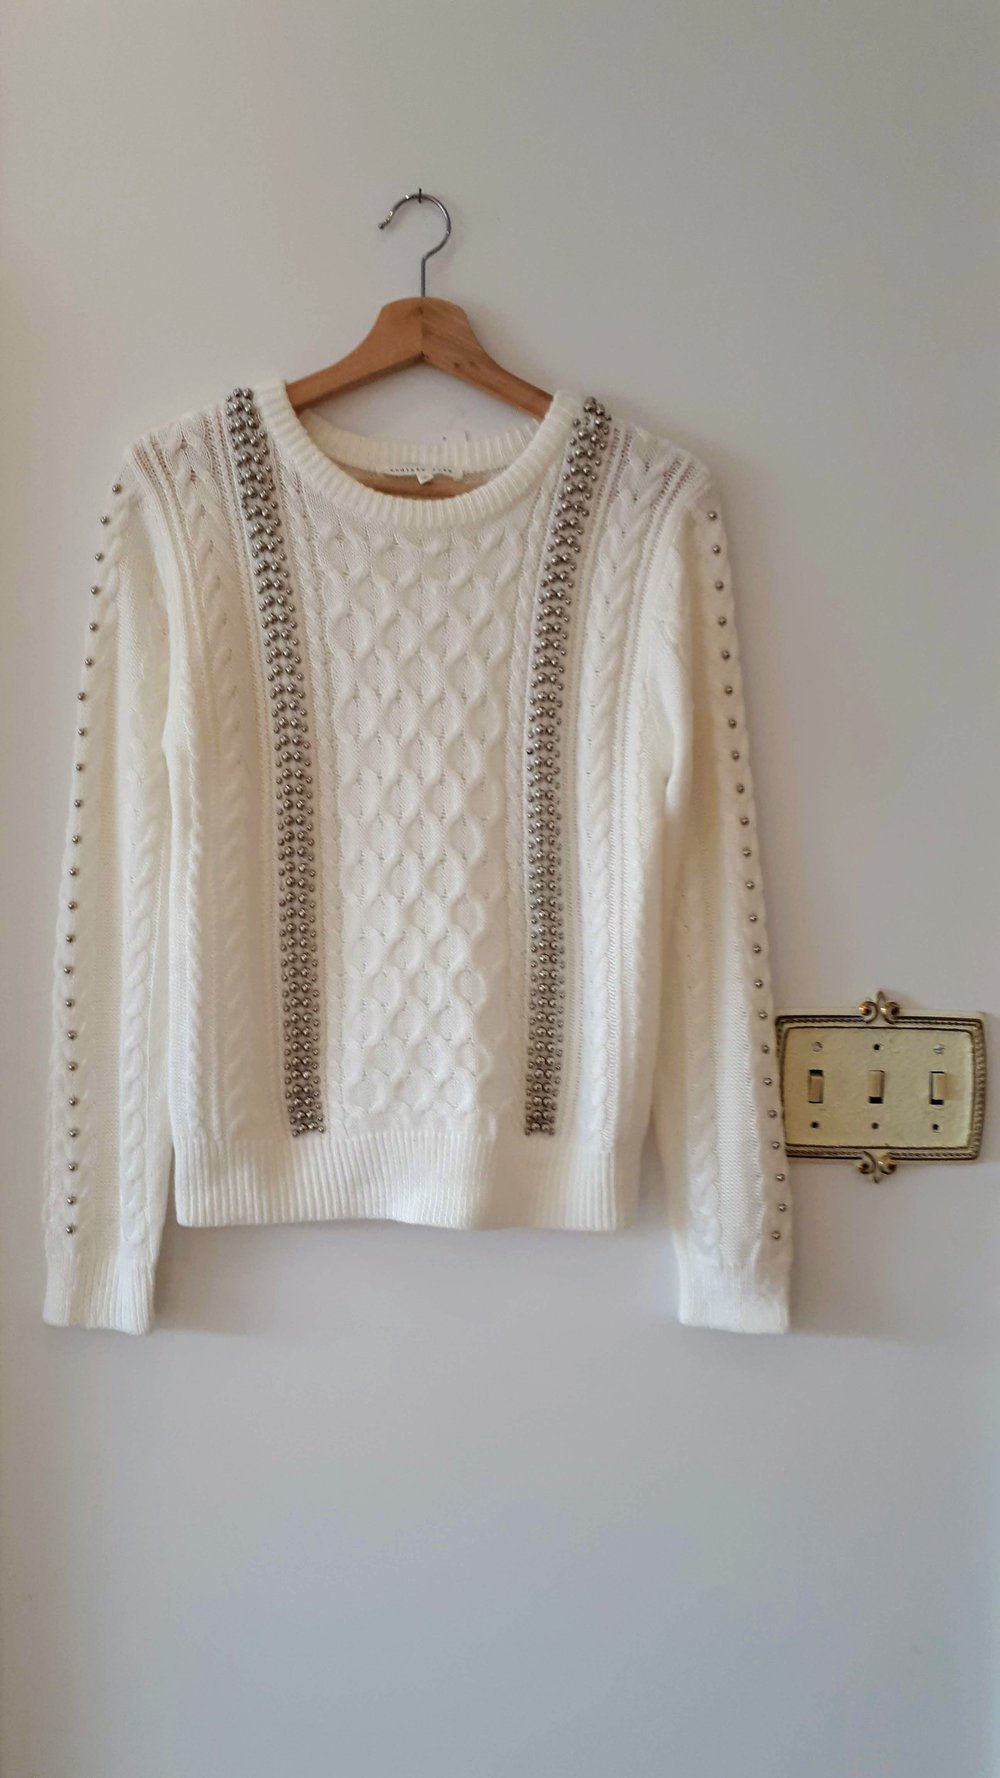 Endless Rose sweater; Size S, $28